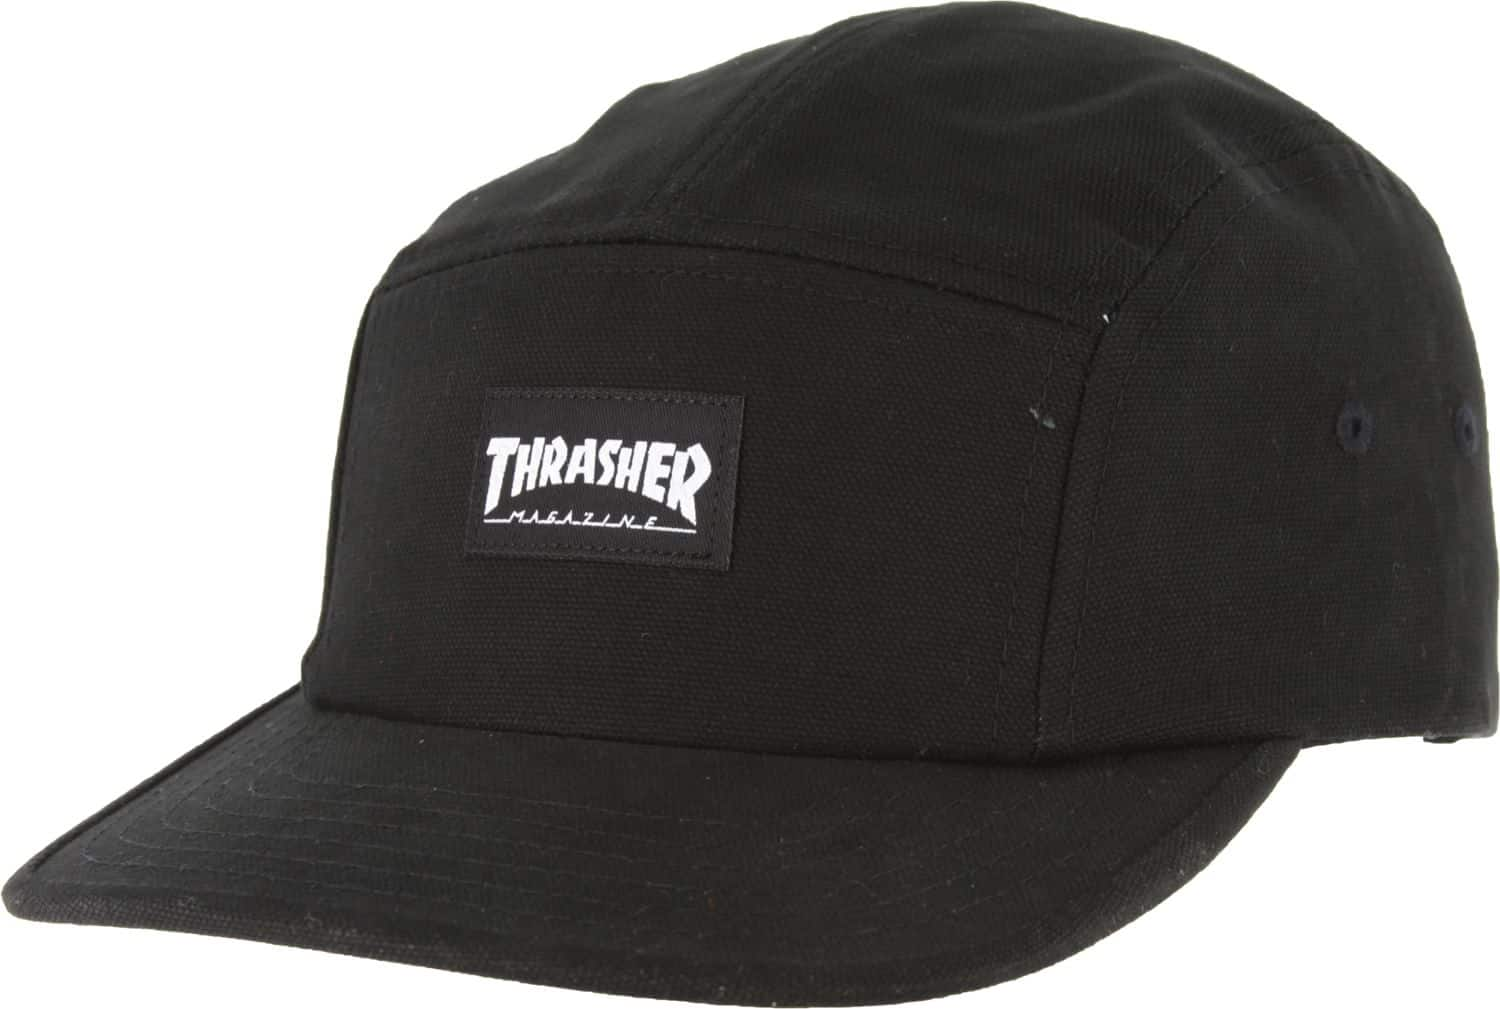 Thrasher Thrasher 5-Panel Hat - Free Shipping  ceeadae1d9a